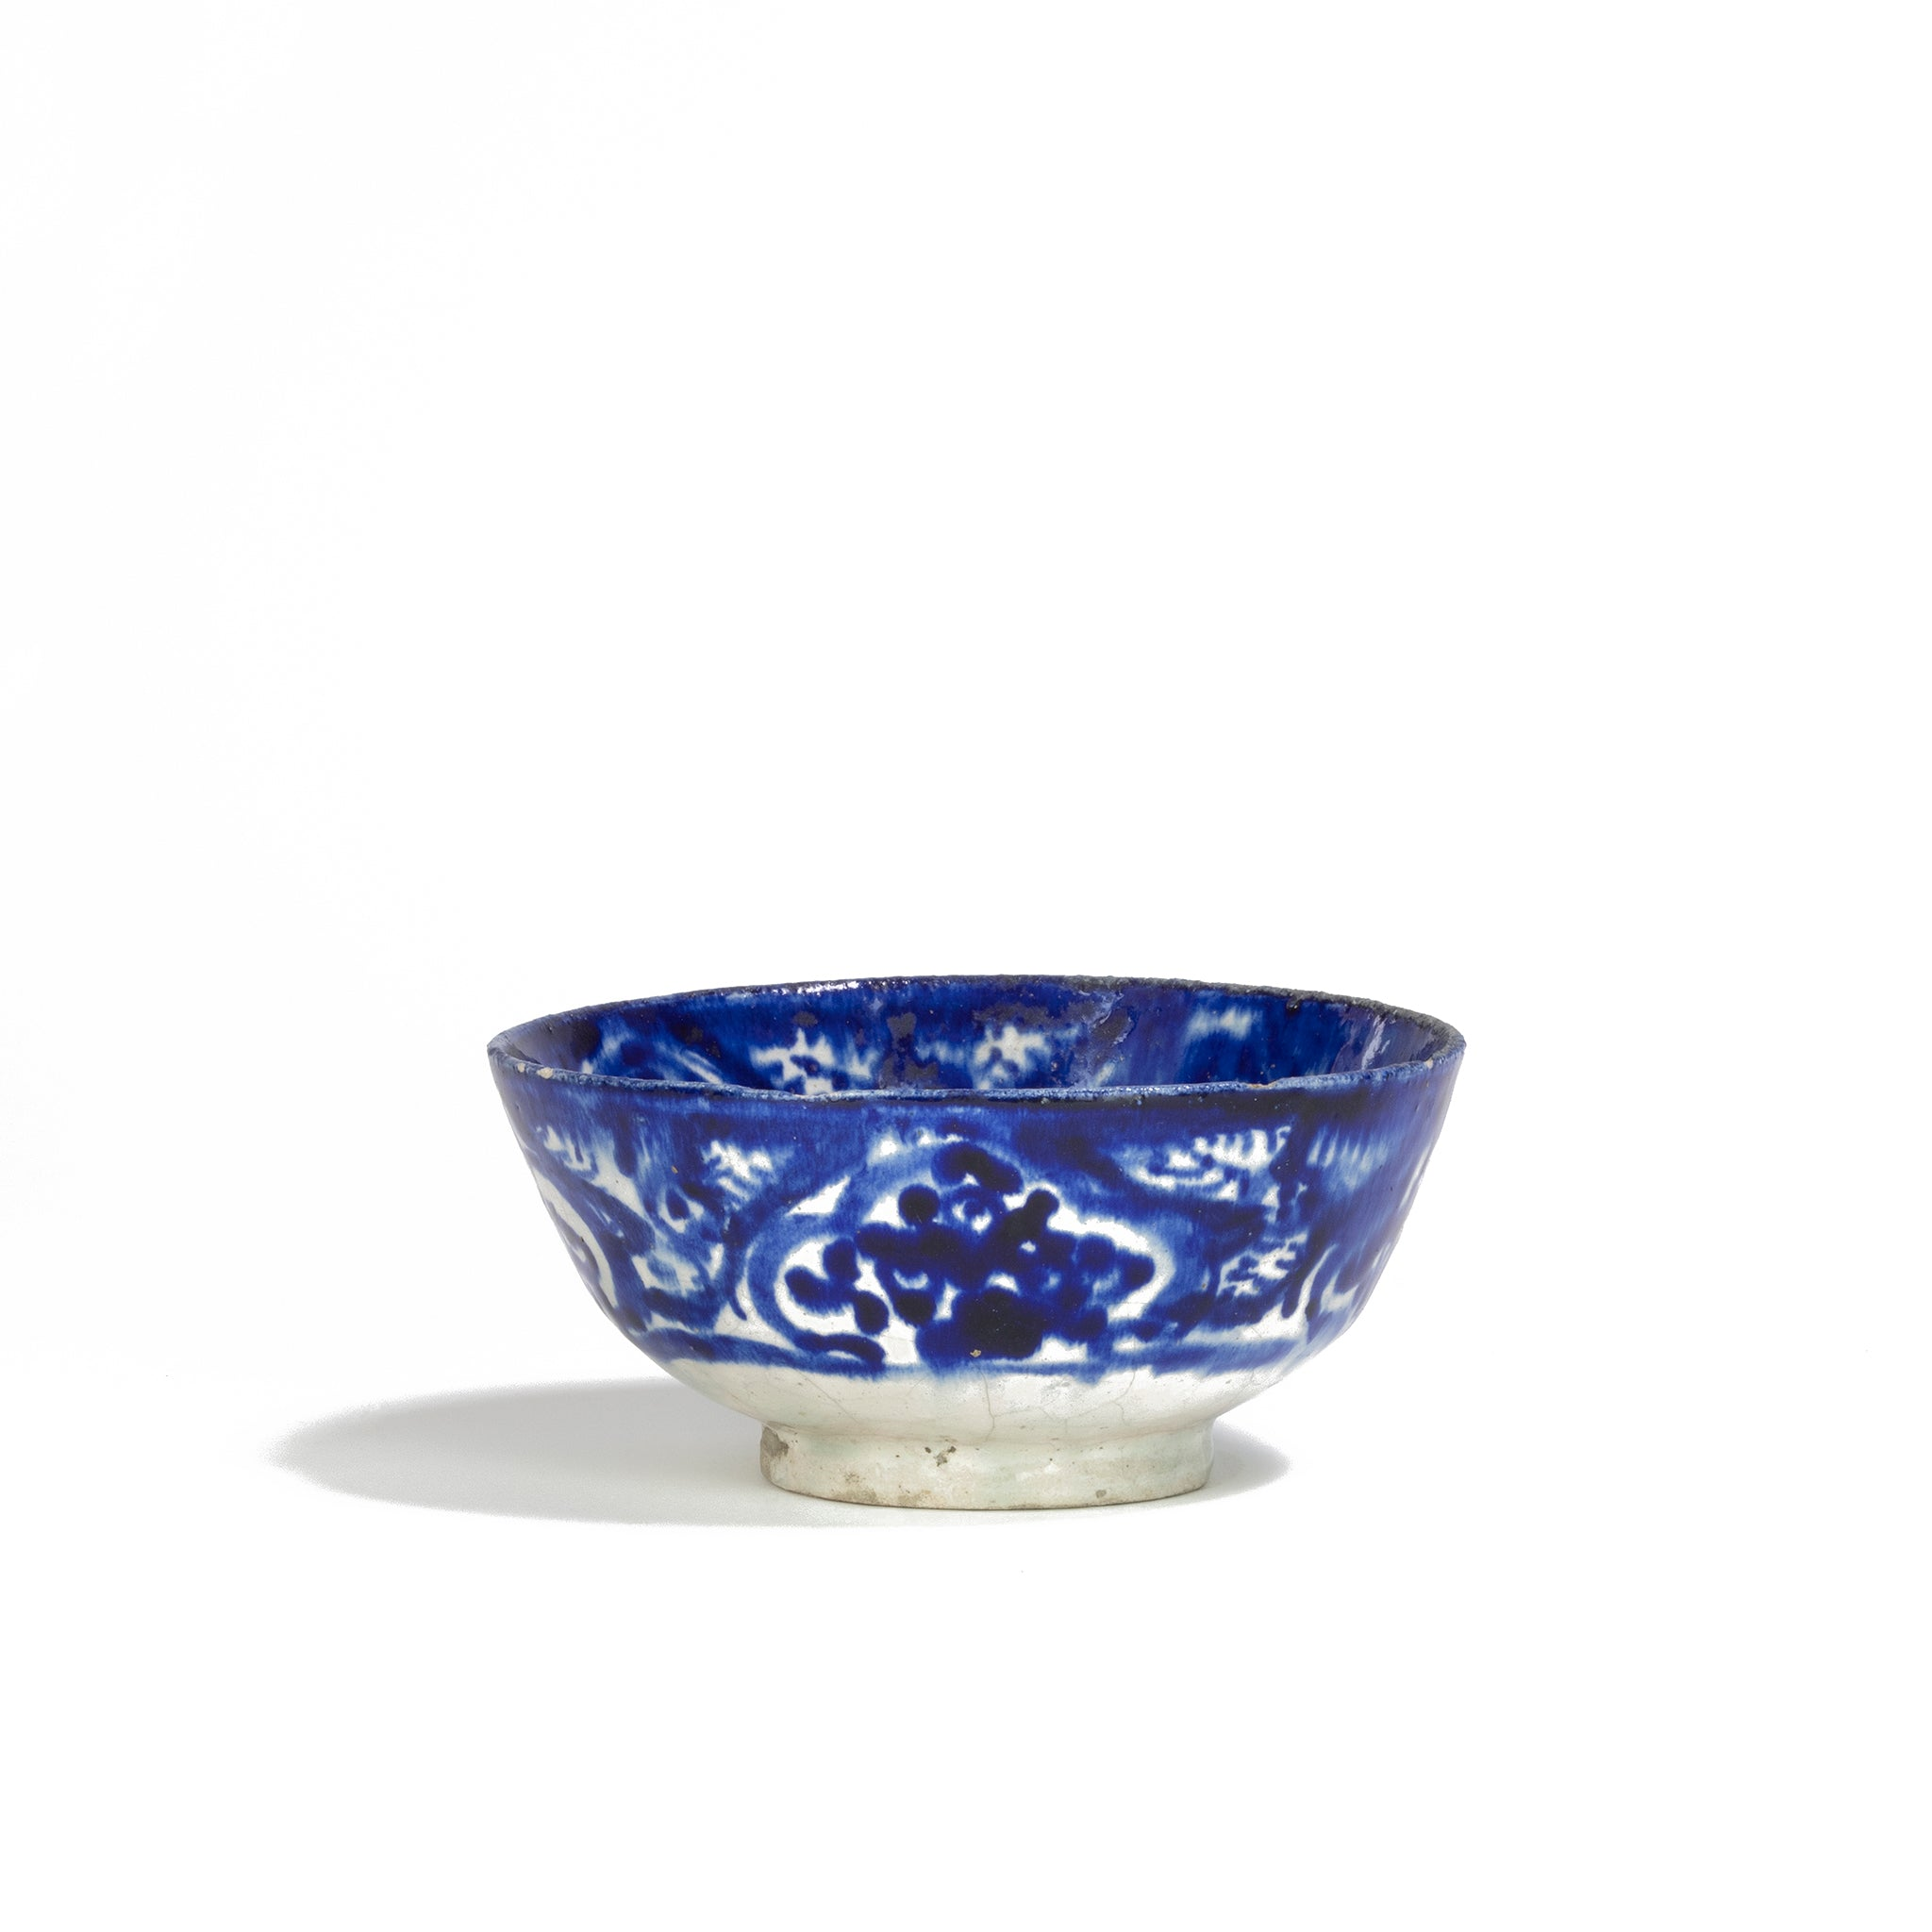 Persian Ceramic Bowl | 19th Century, Kashan